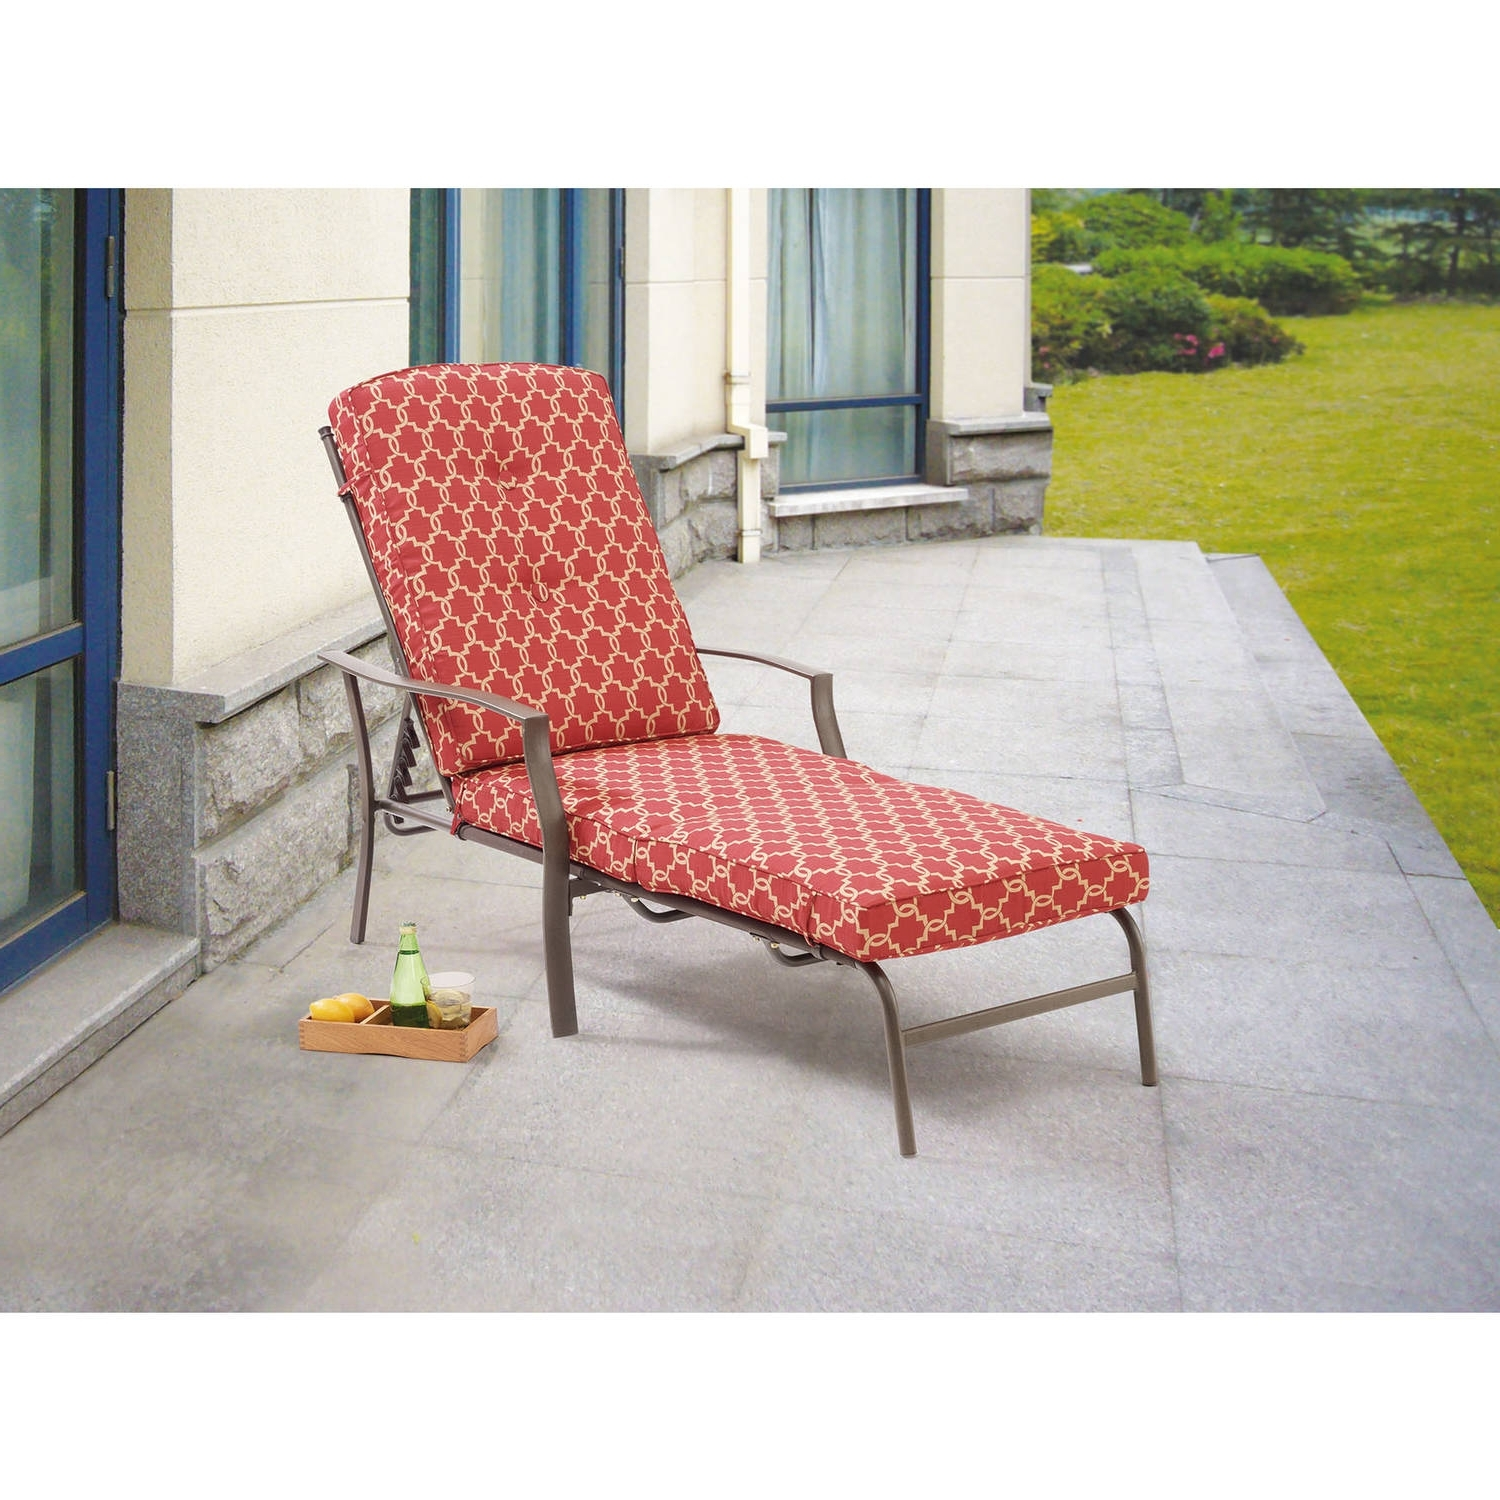 Martha Stewart Outdoor Chaise Lounge Chairs For Current Ideas Collection Martha Stewart Chaise Lounge In Chaise Lounge (View 8 of 15)